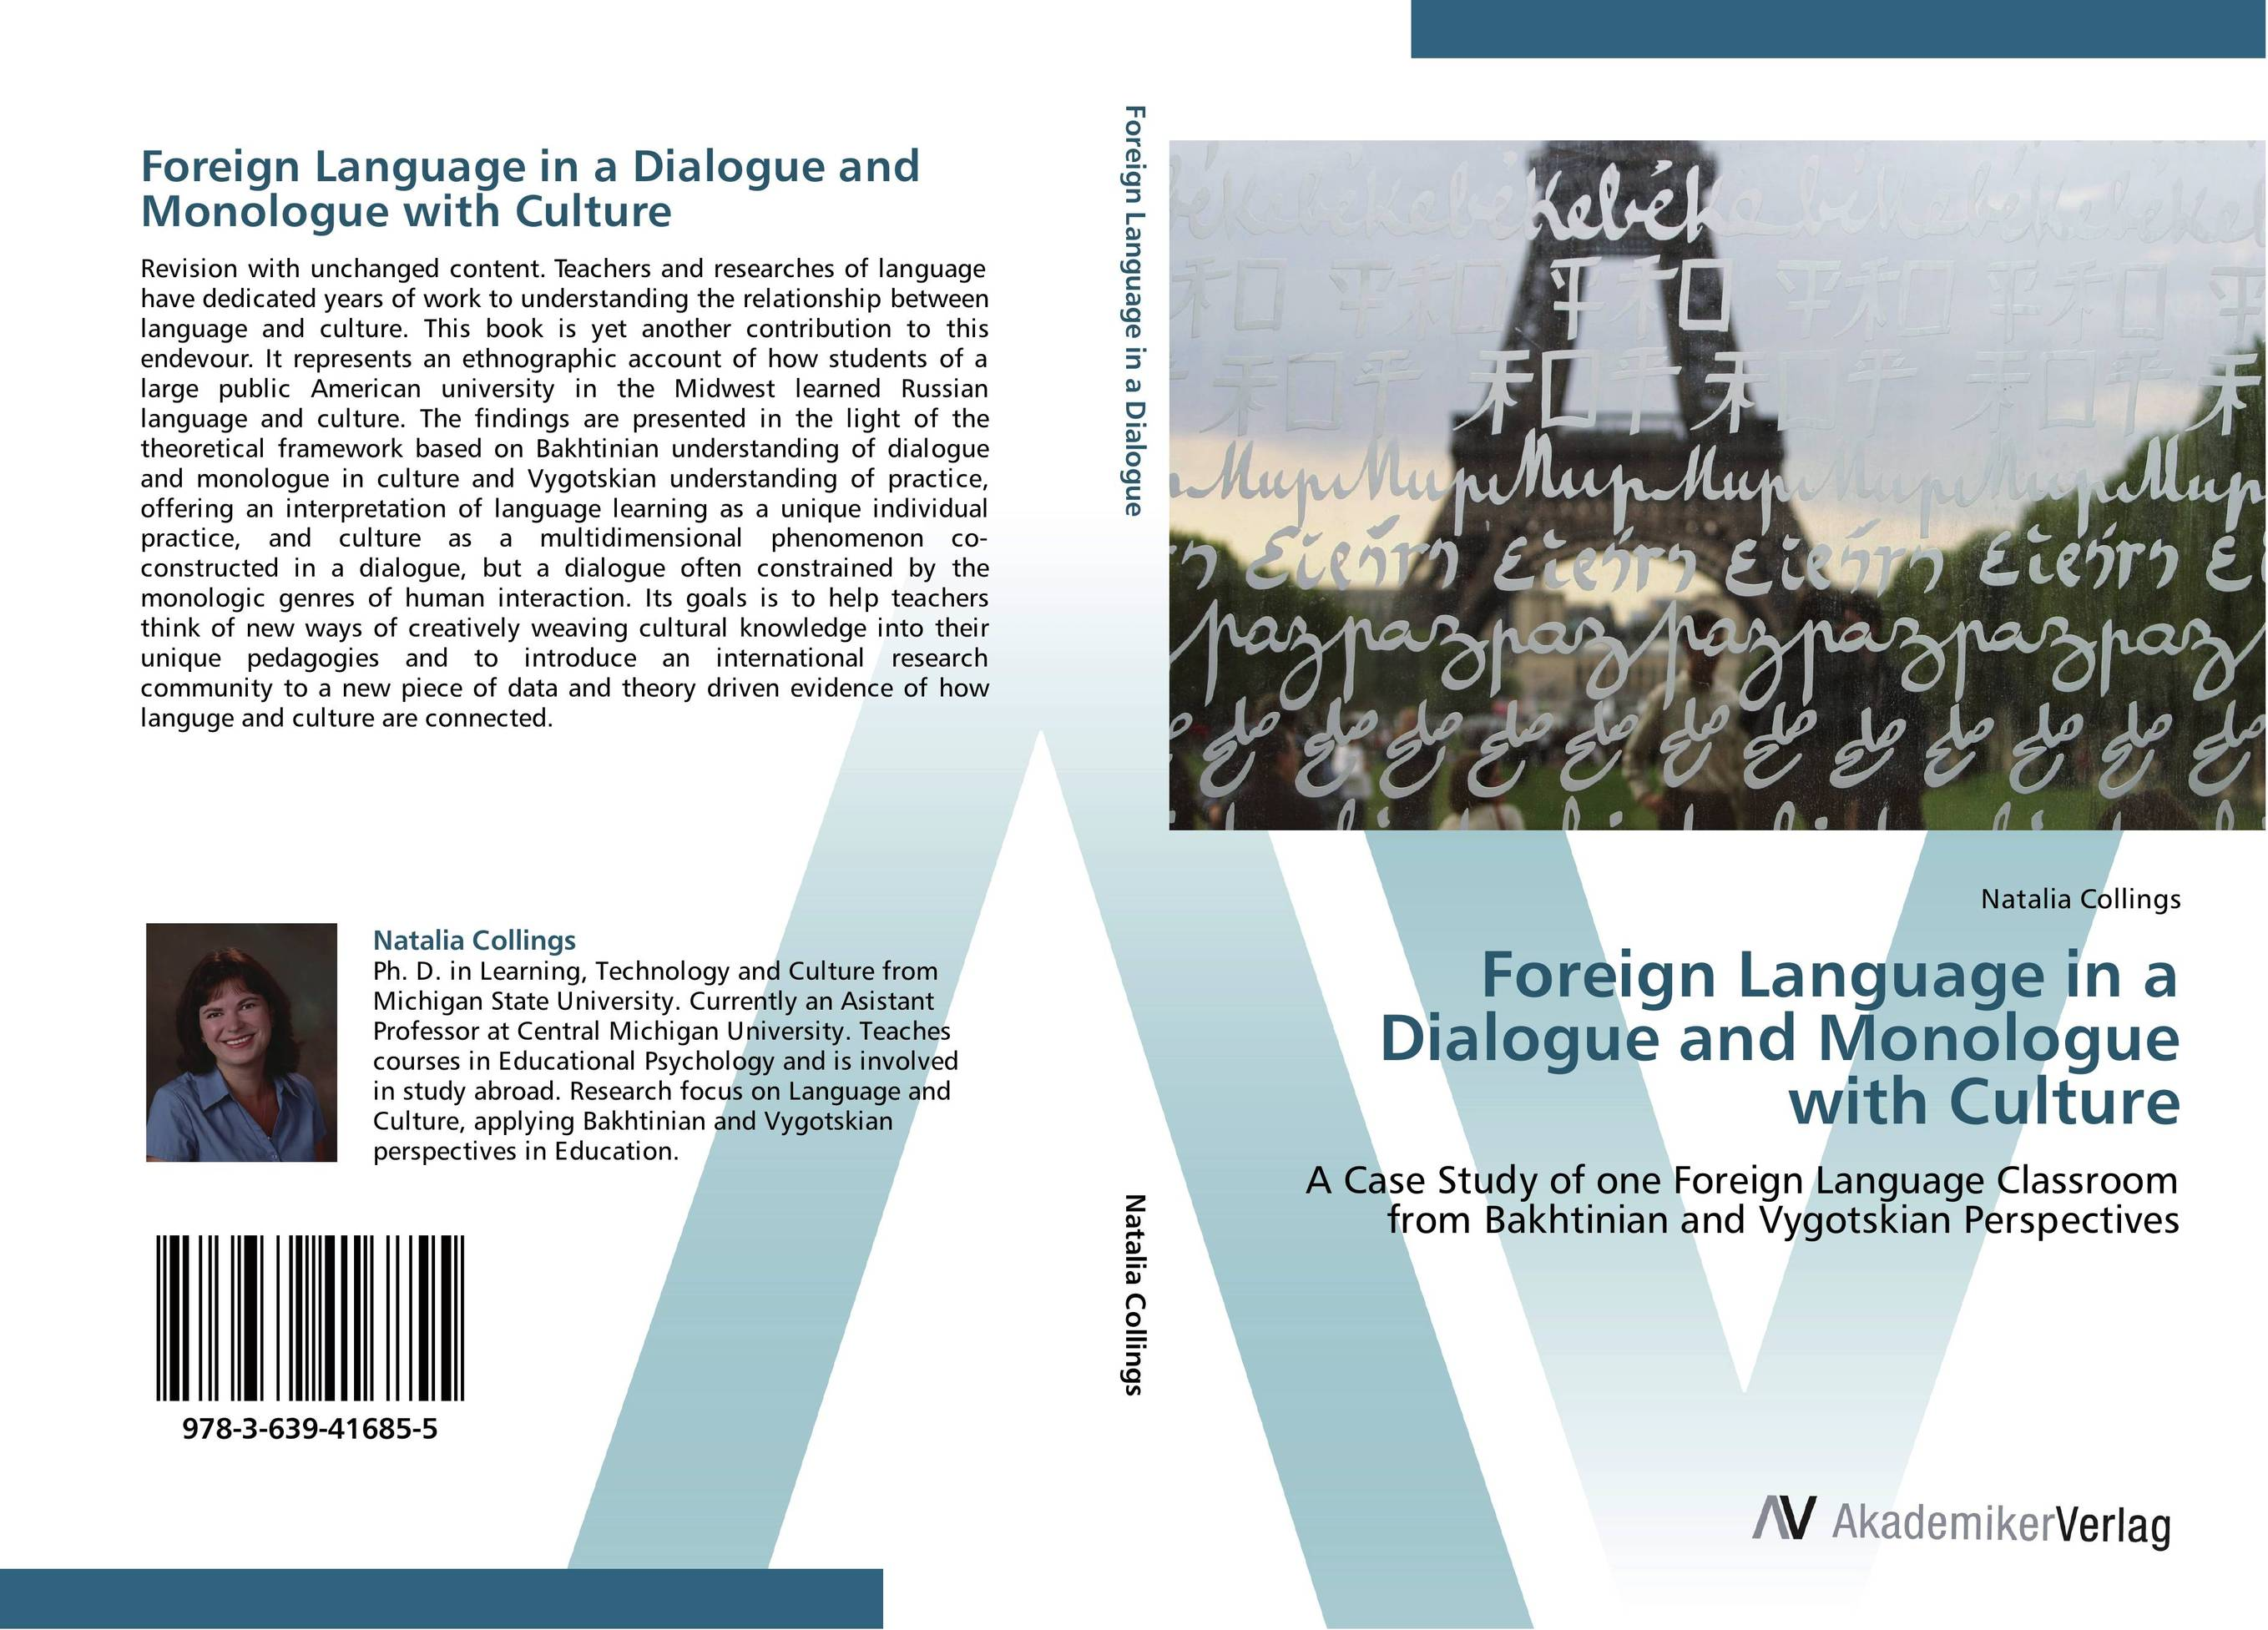 Foreign Language in a Dialogue and Monologue with Culture learner autonomy and web based language learning wbll